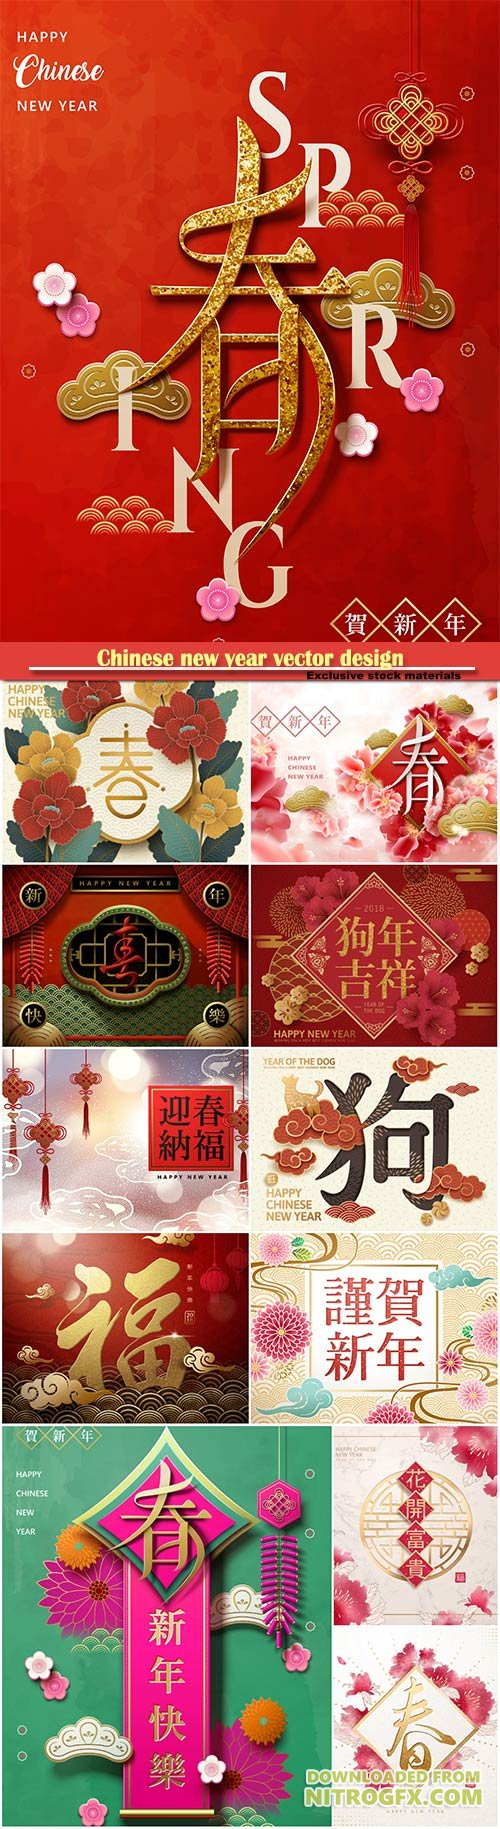 Attractive Chinese new year vector design